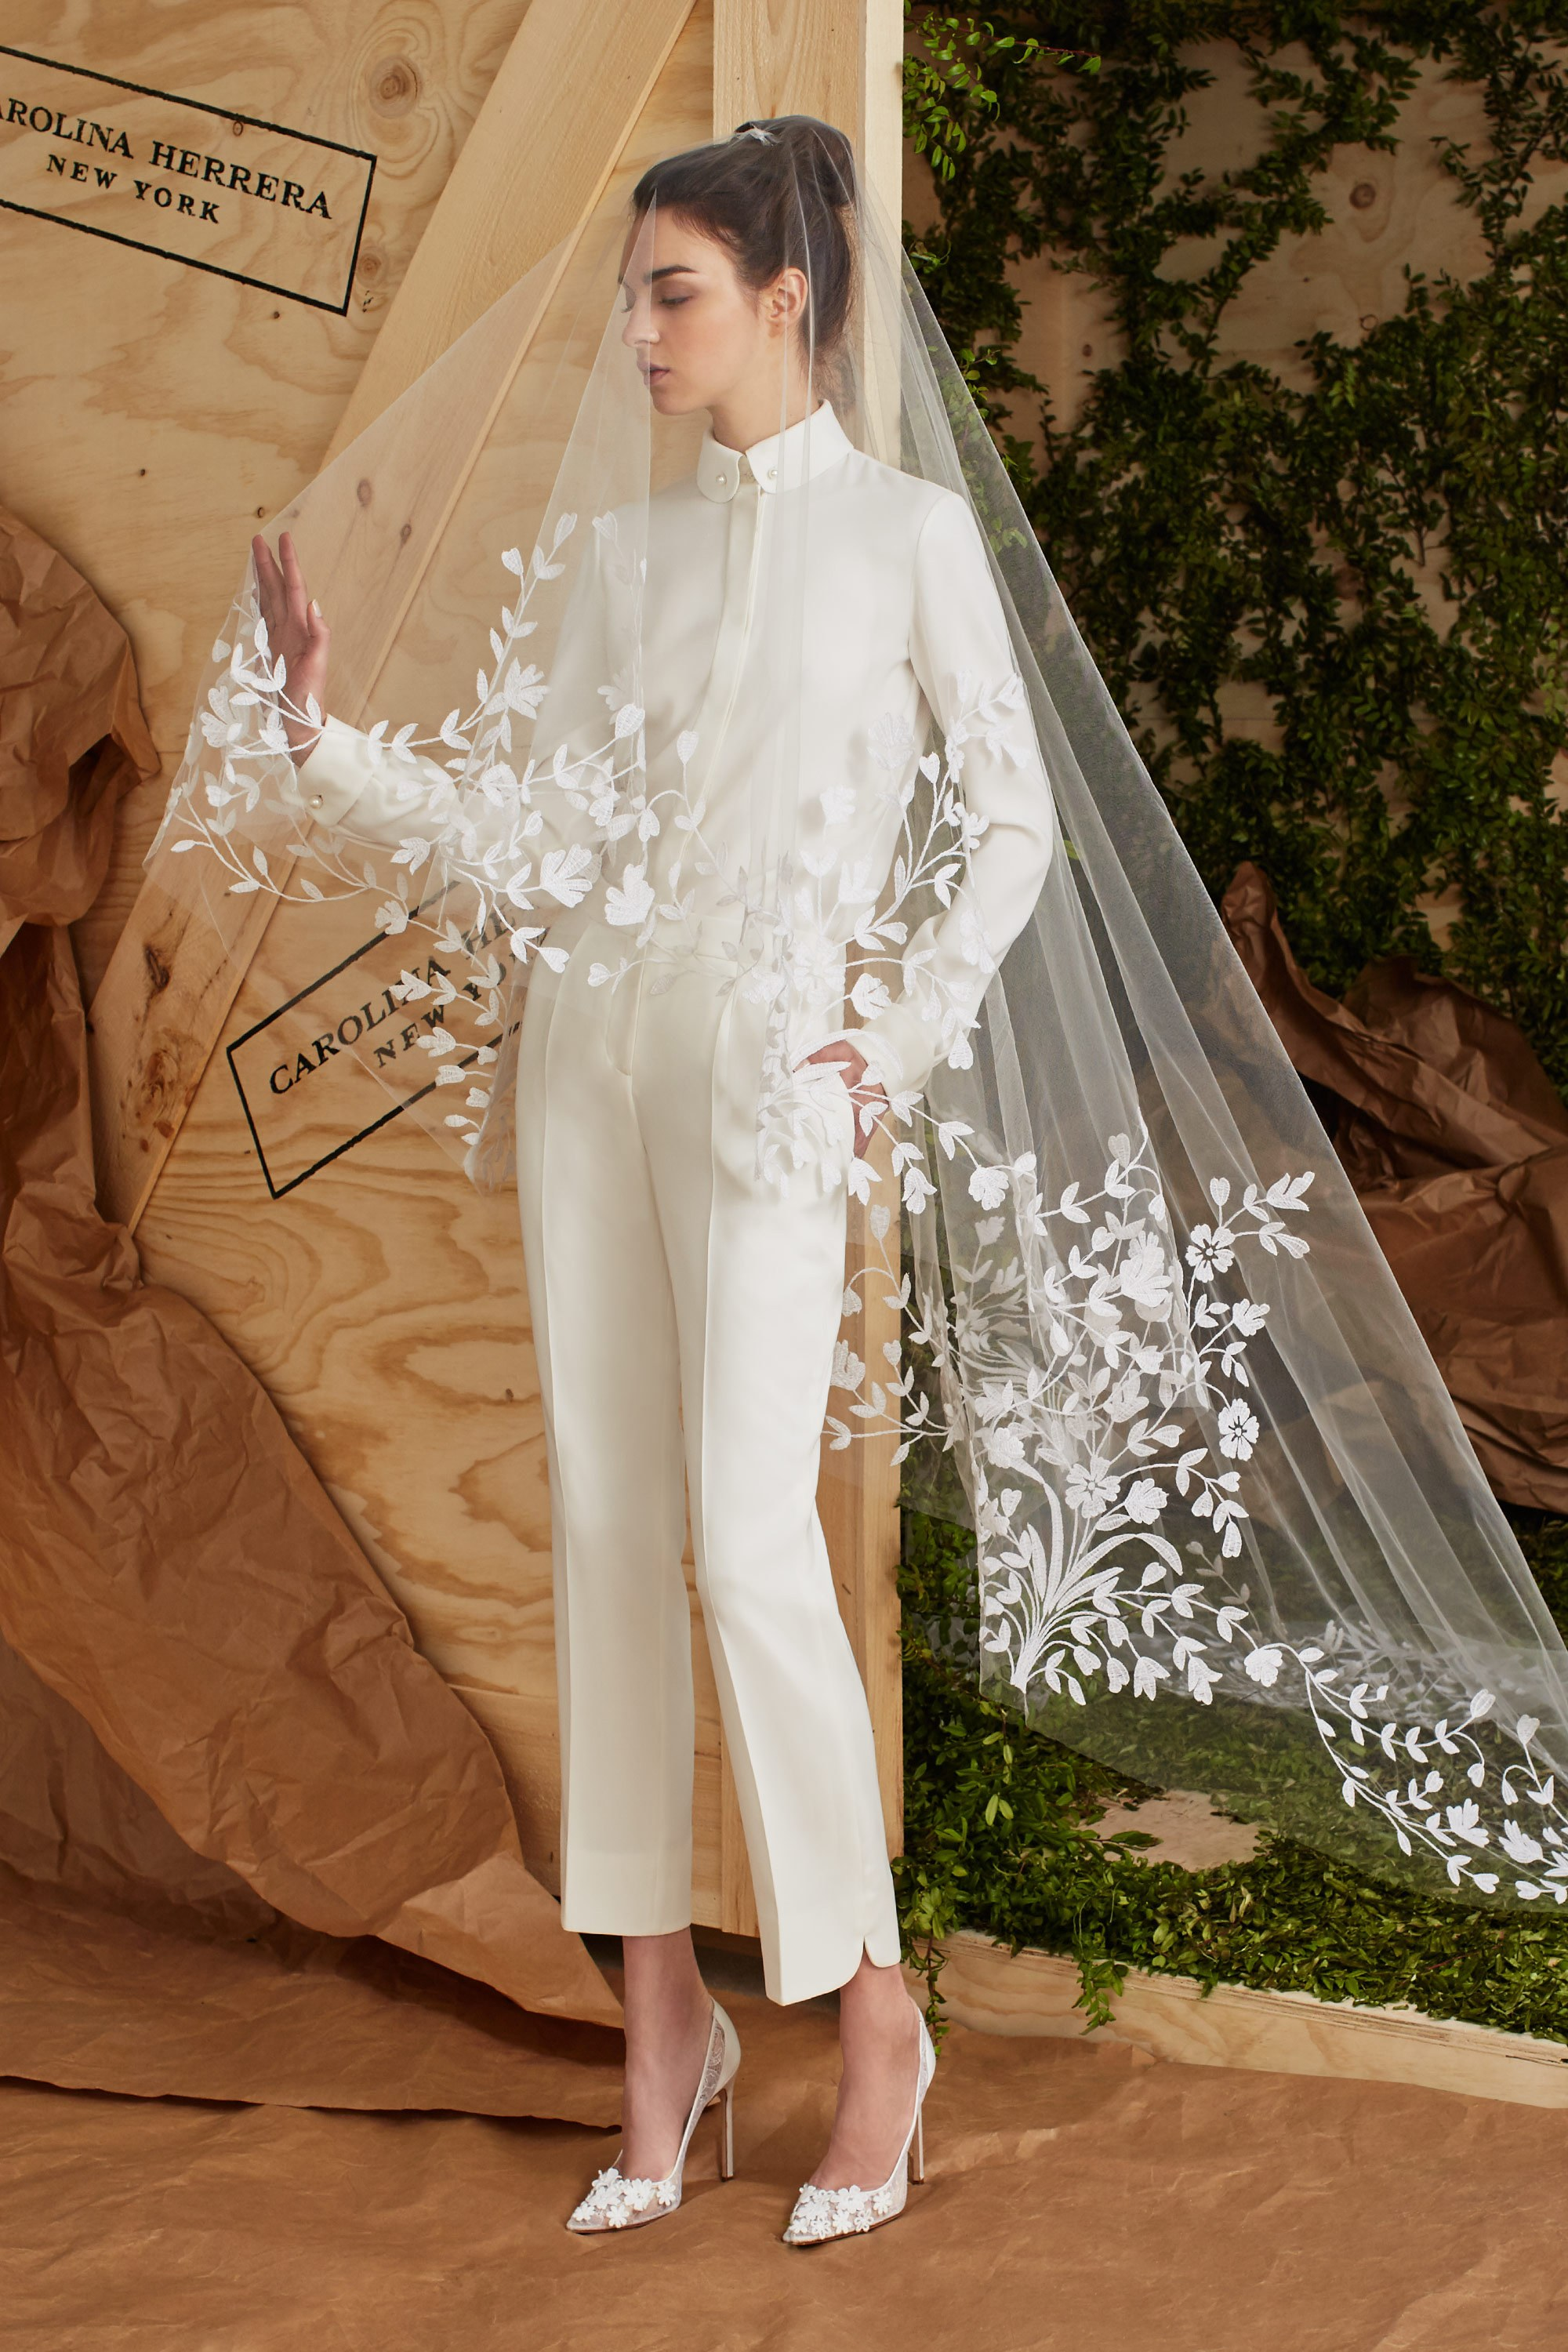 Who says a bride has to wear a dress? - Carolina Herrera redefines gender rules with this crisp pantsuit from her Spring 2017 bridal collection.